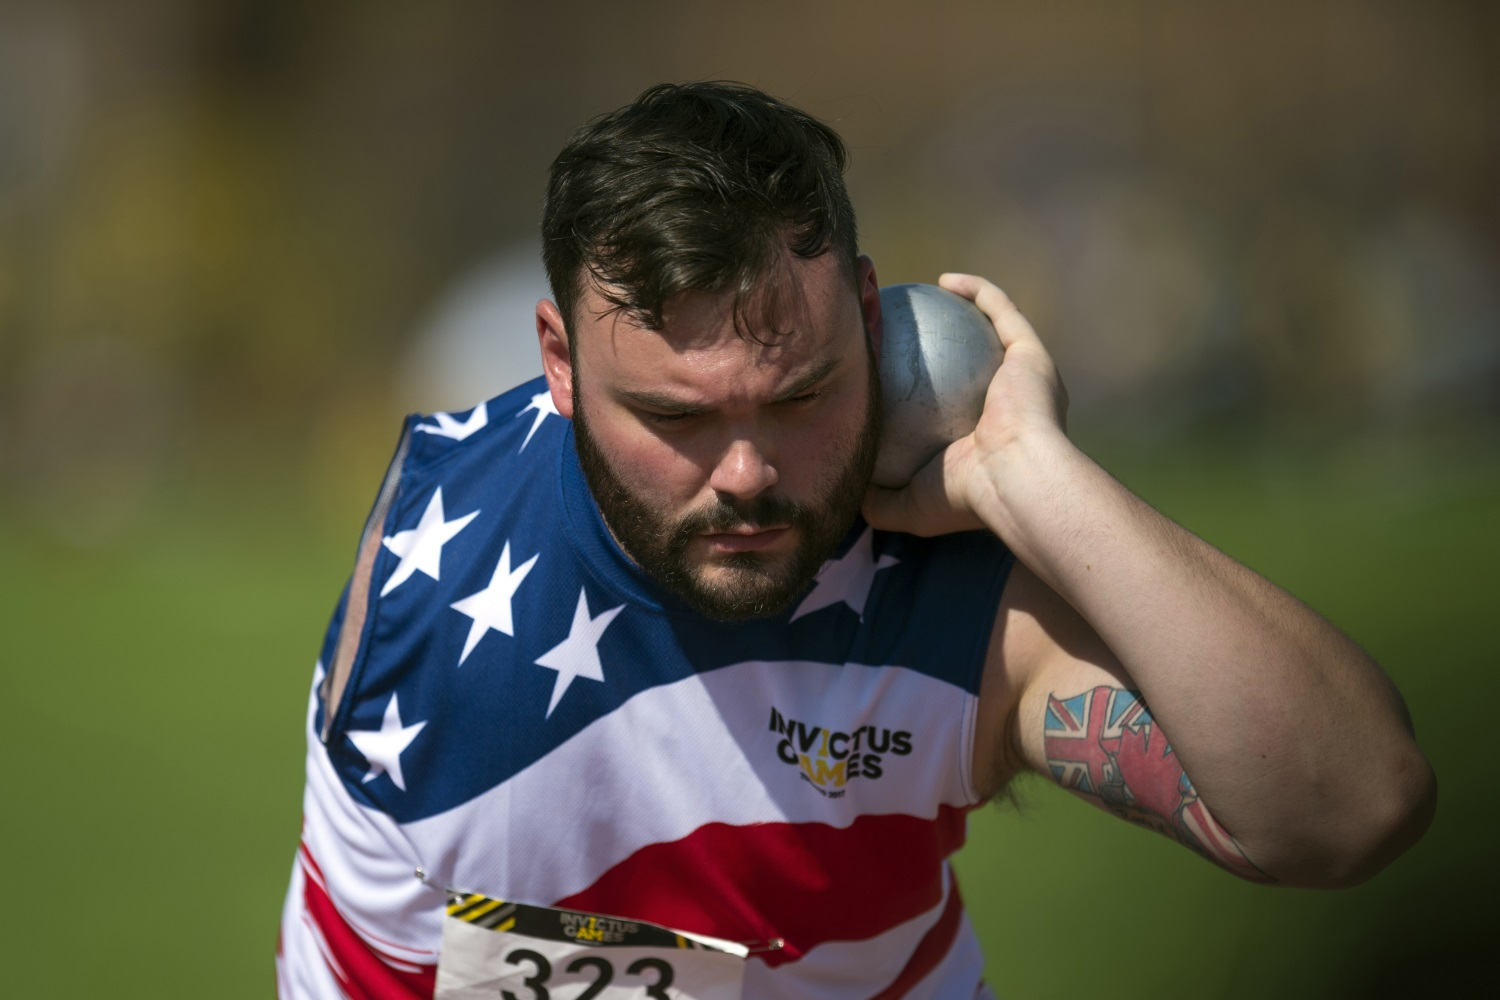 Retired Air Force Senior Airman Lucas Purser throws shot put during the athletics finals of the 2017 Invictus Games in Toronto, Canada, on Sept. 25, 2017. (EJ Hersom/DoD)